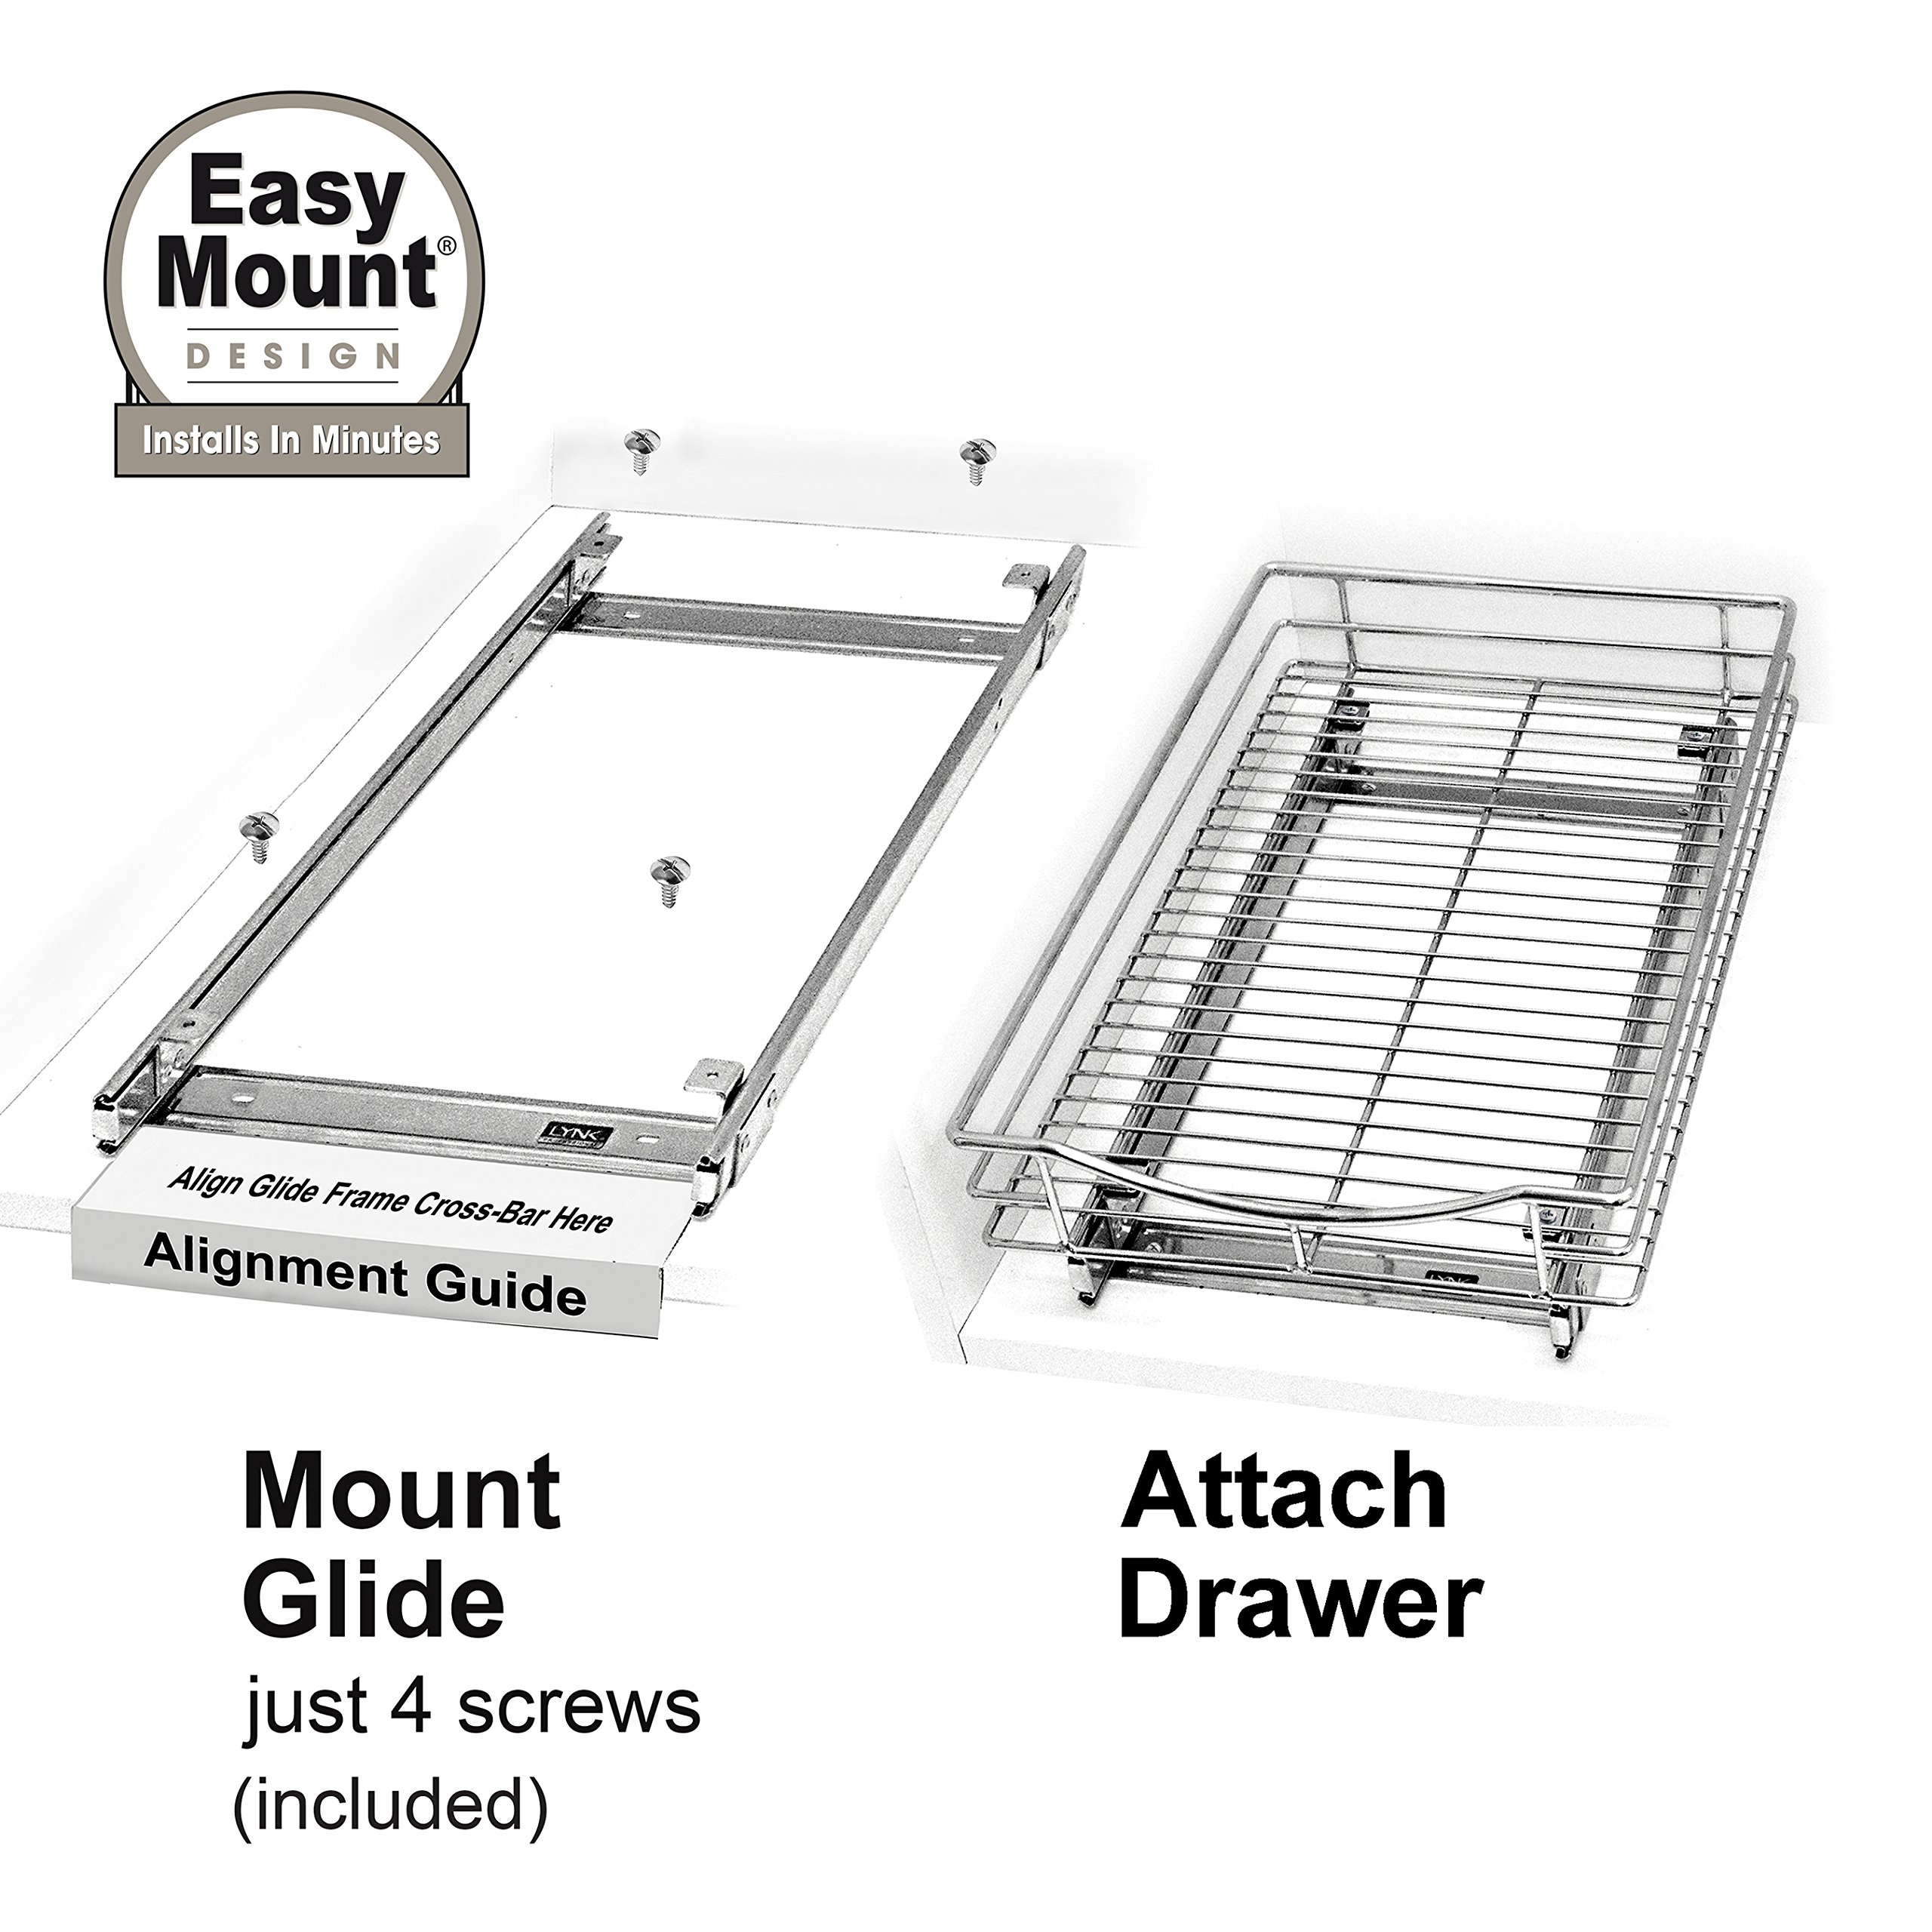 Lynk Professional Slide Out Cabinet Organizer - Pull Out Under Cabinet Sliding Shelf by Lynk (Image #5)